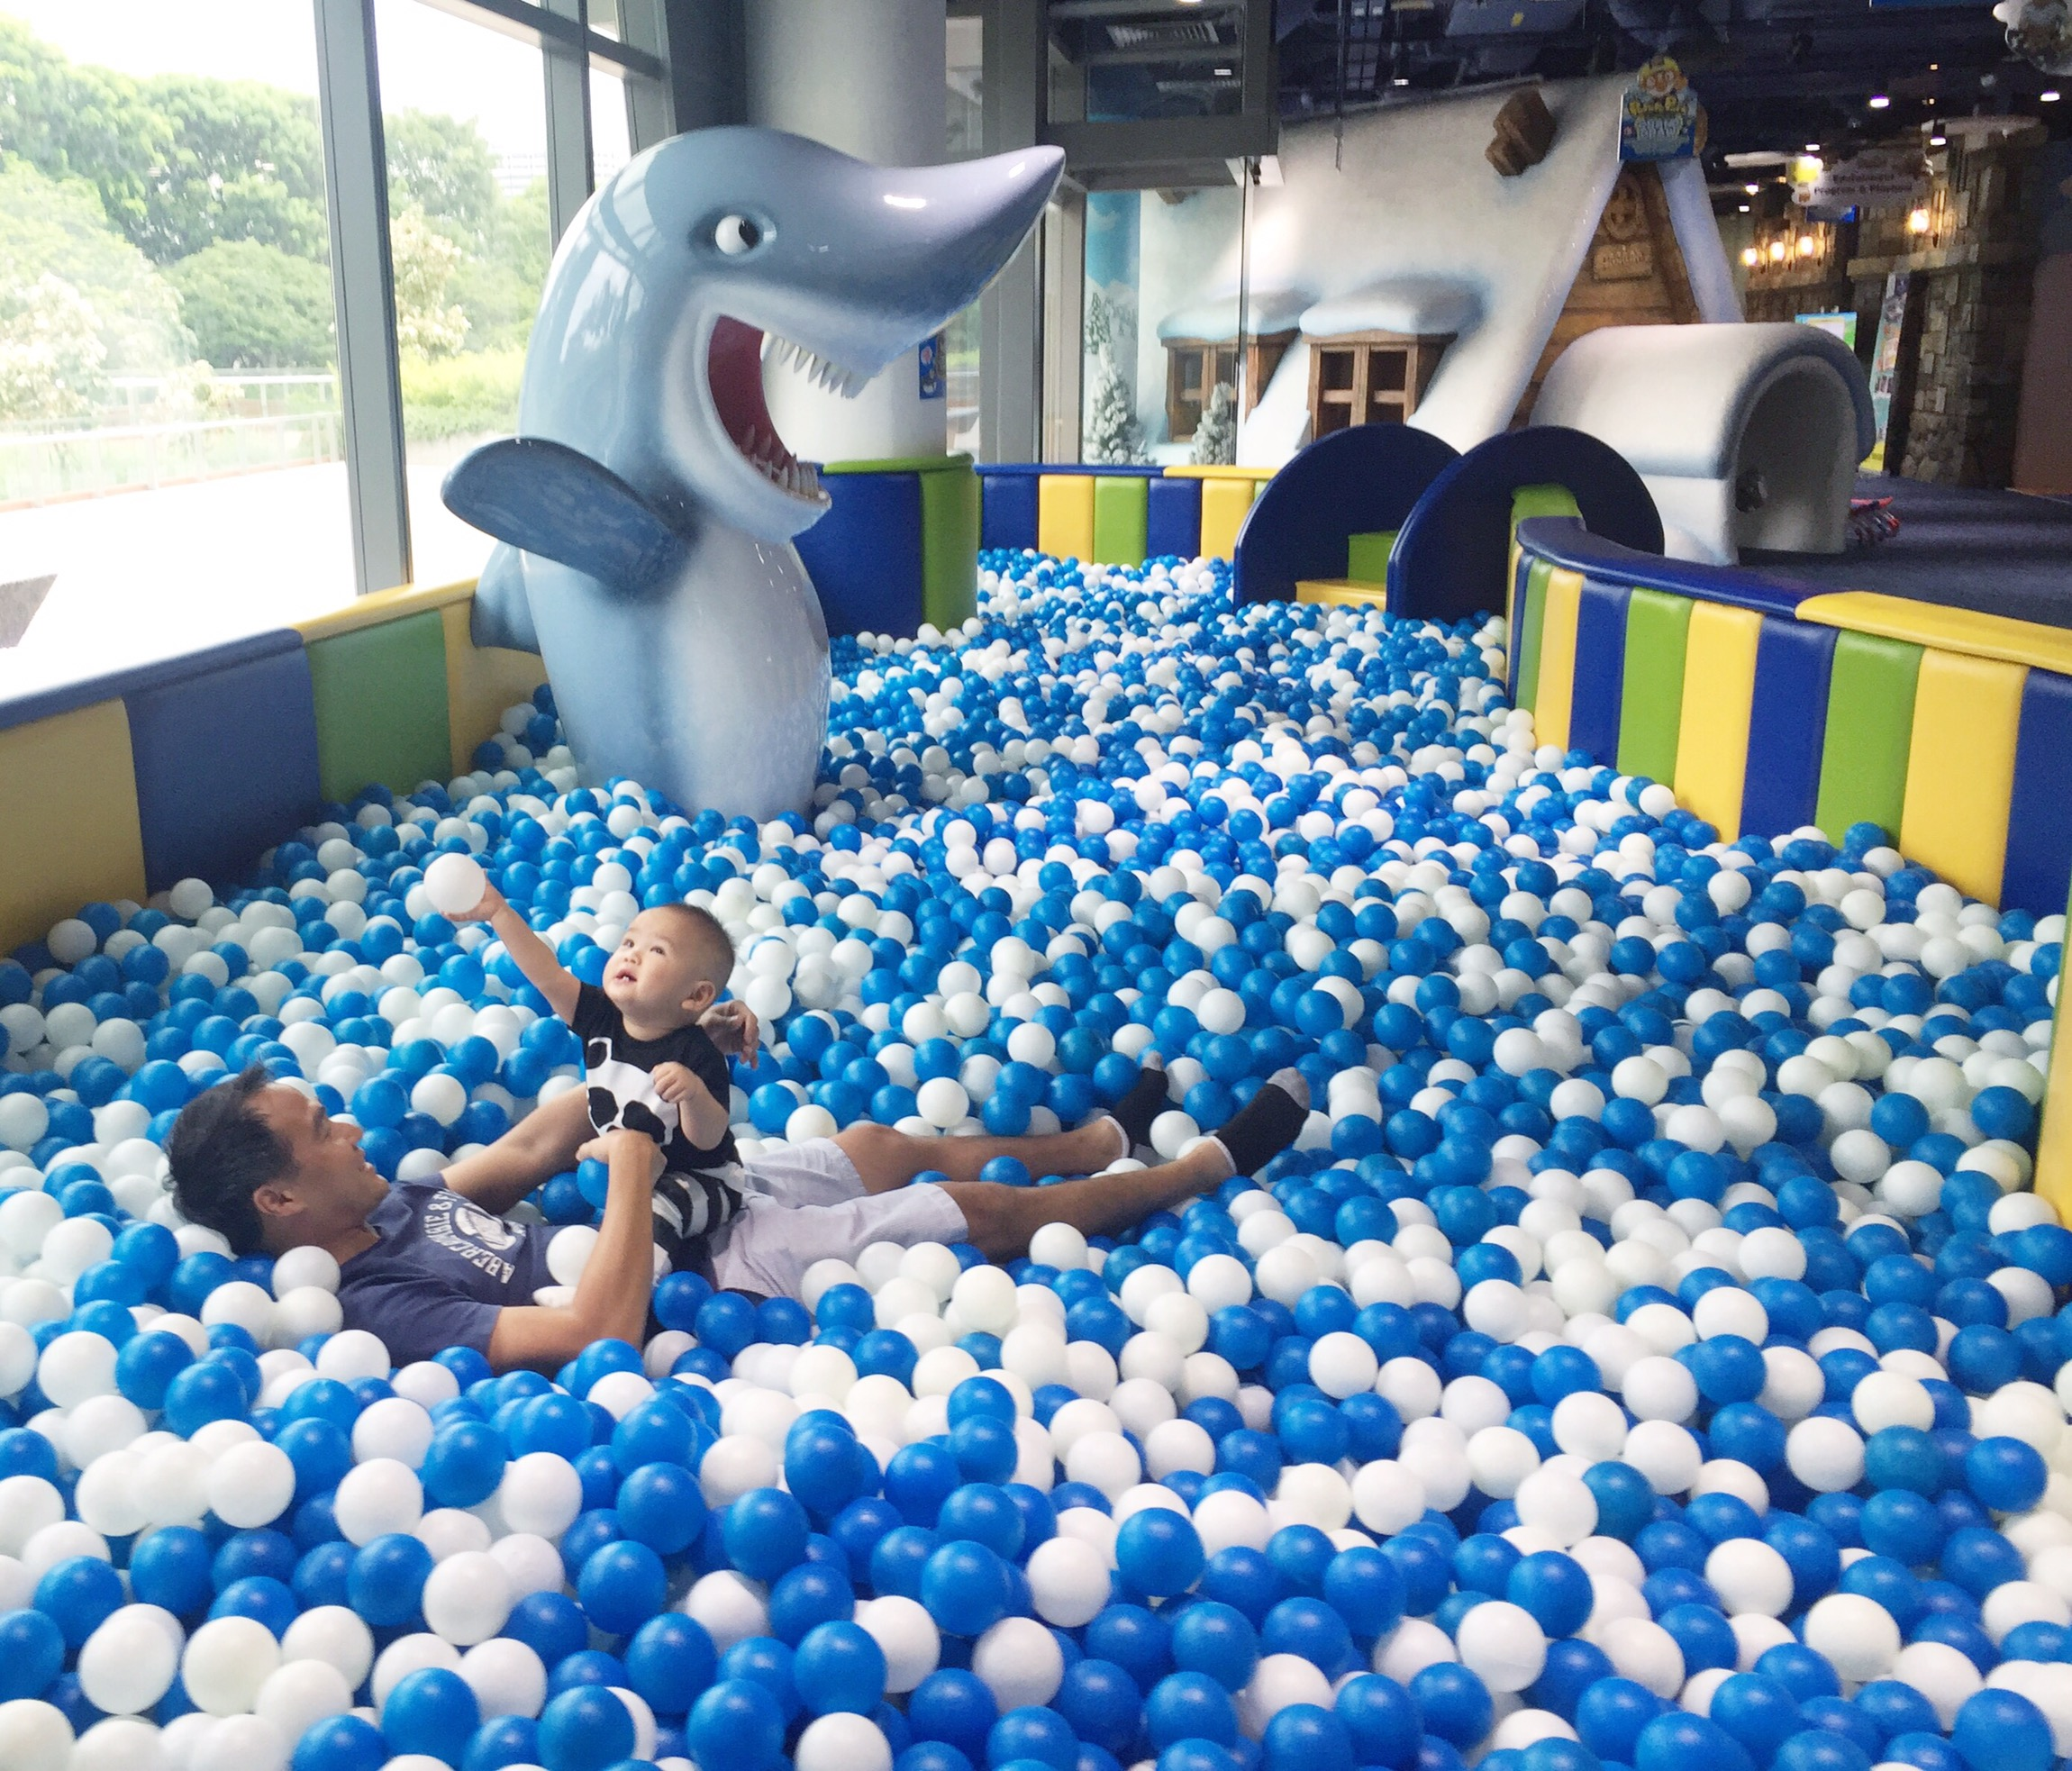 Pororo park singapore indoor amusement park for toddlers for Ball pits near me